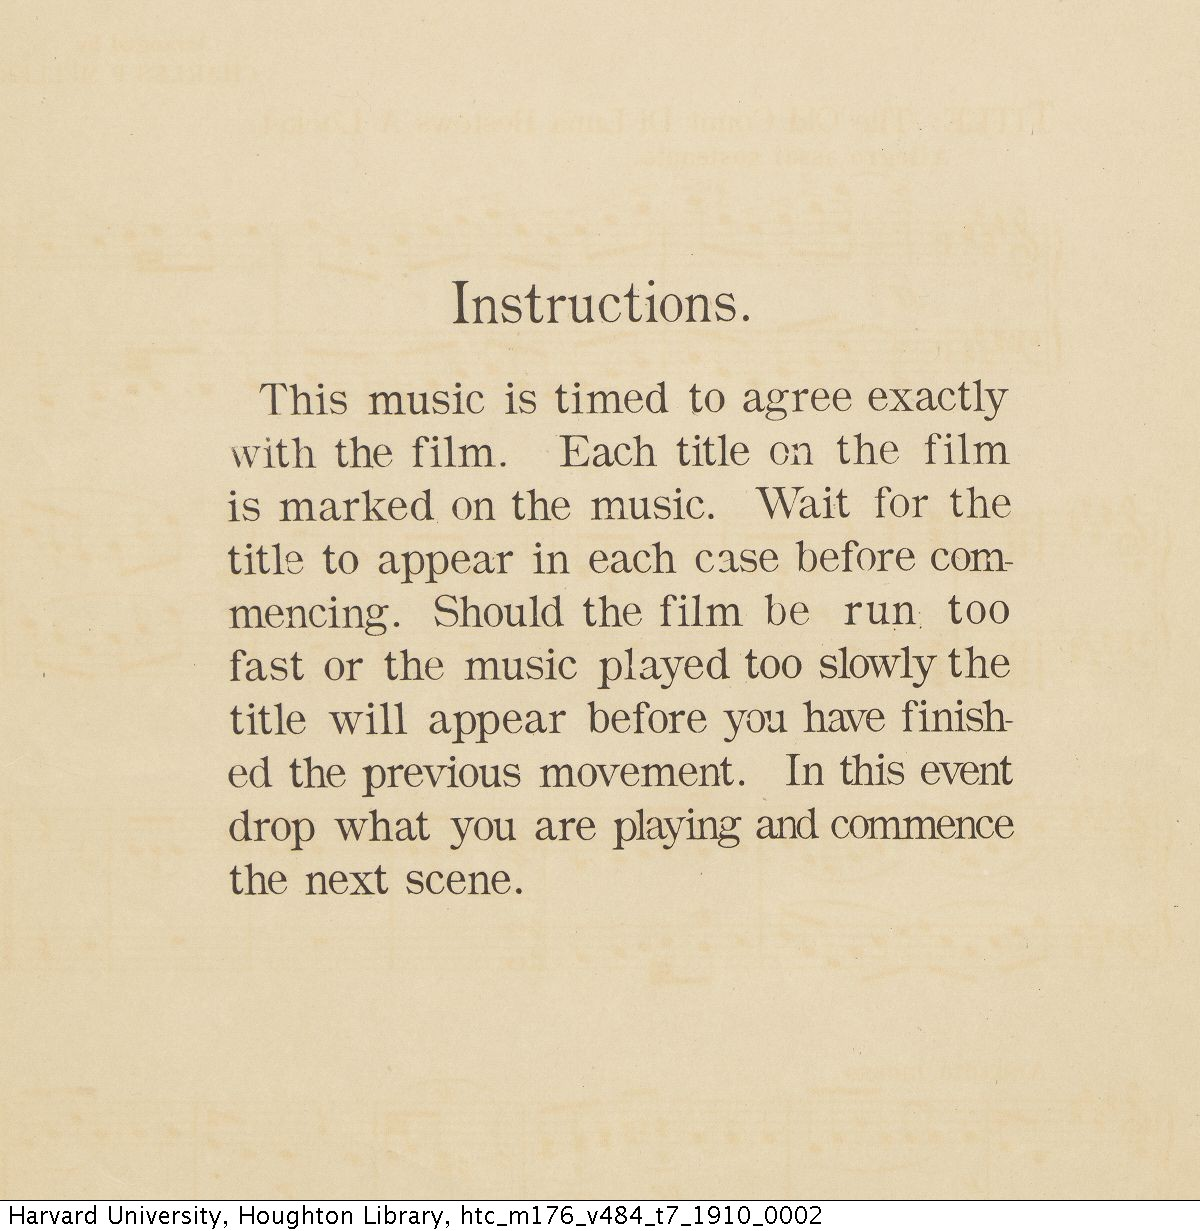 "Verdi, Giuseppe, 1813-1901. Incidental music to Pathé Frères film d'art ""Il trovatore"" / arranged by Charles P. Müller. New York : Pathé Frères, c1910. M176.V484 T7 1910"